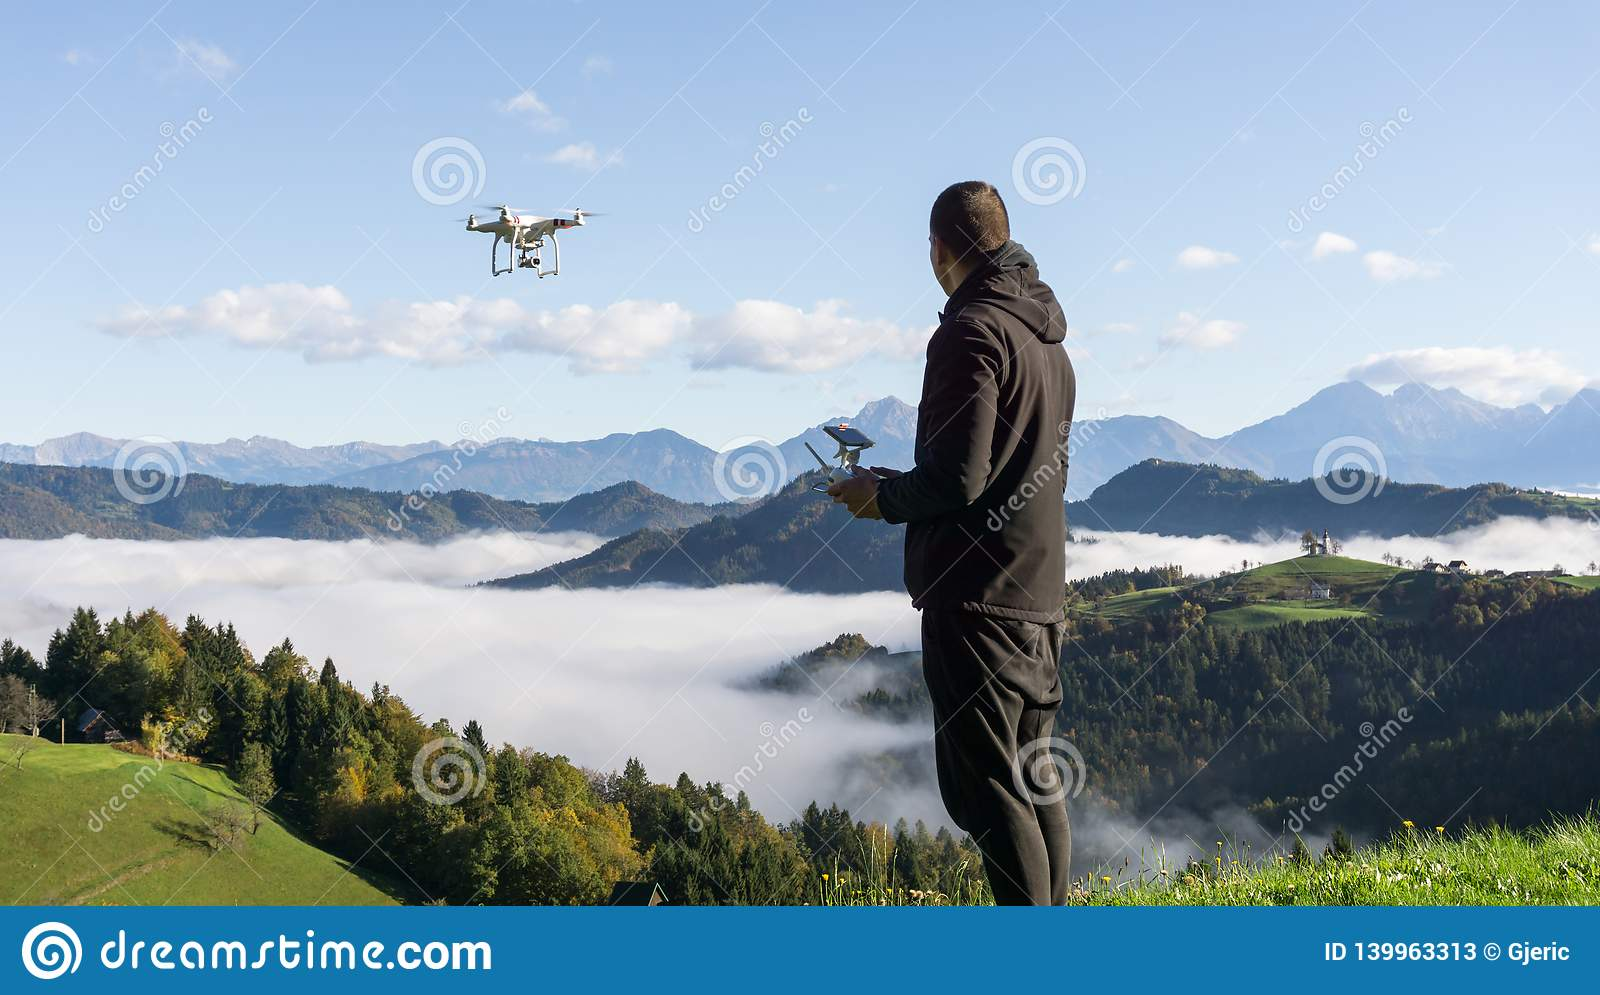 Man operating drone flying or hovering by remote control with beautiful foggy landscape in the background